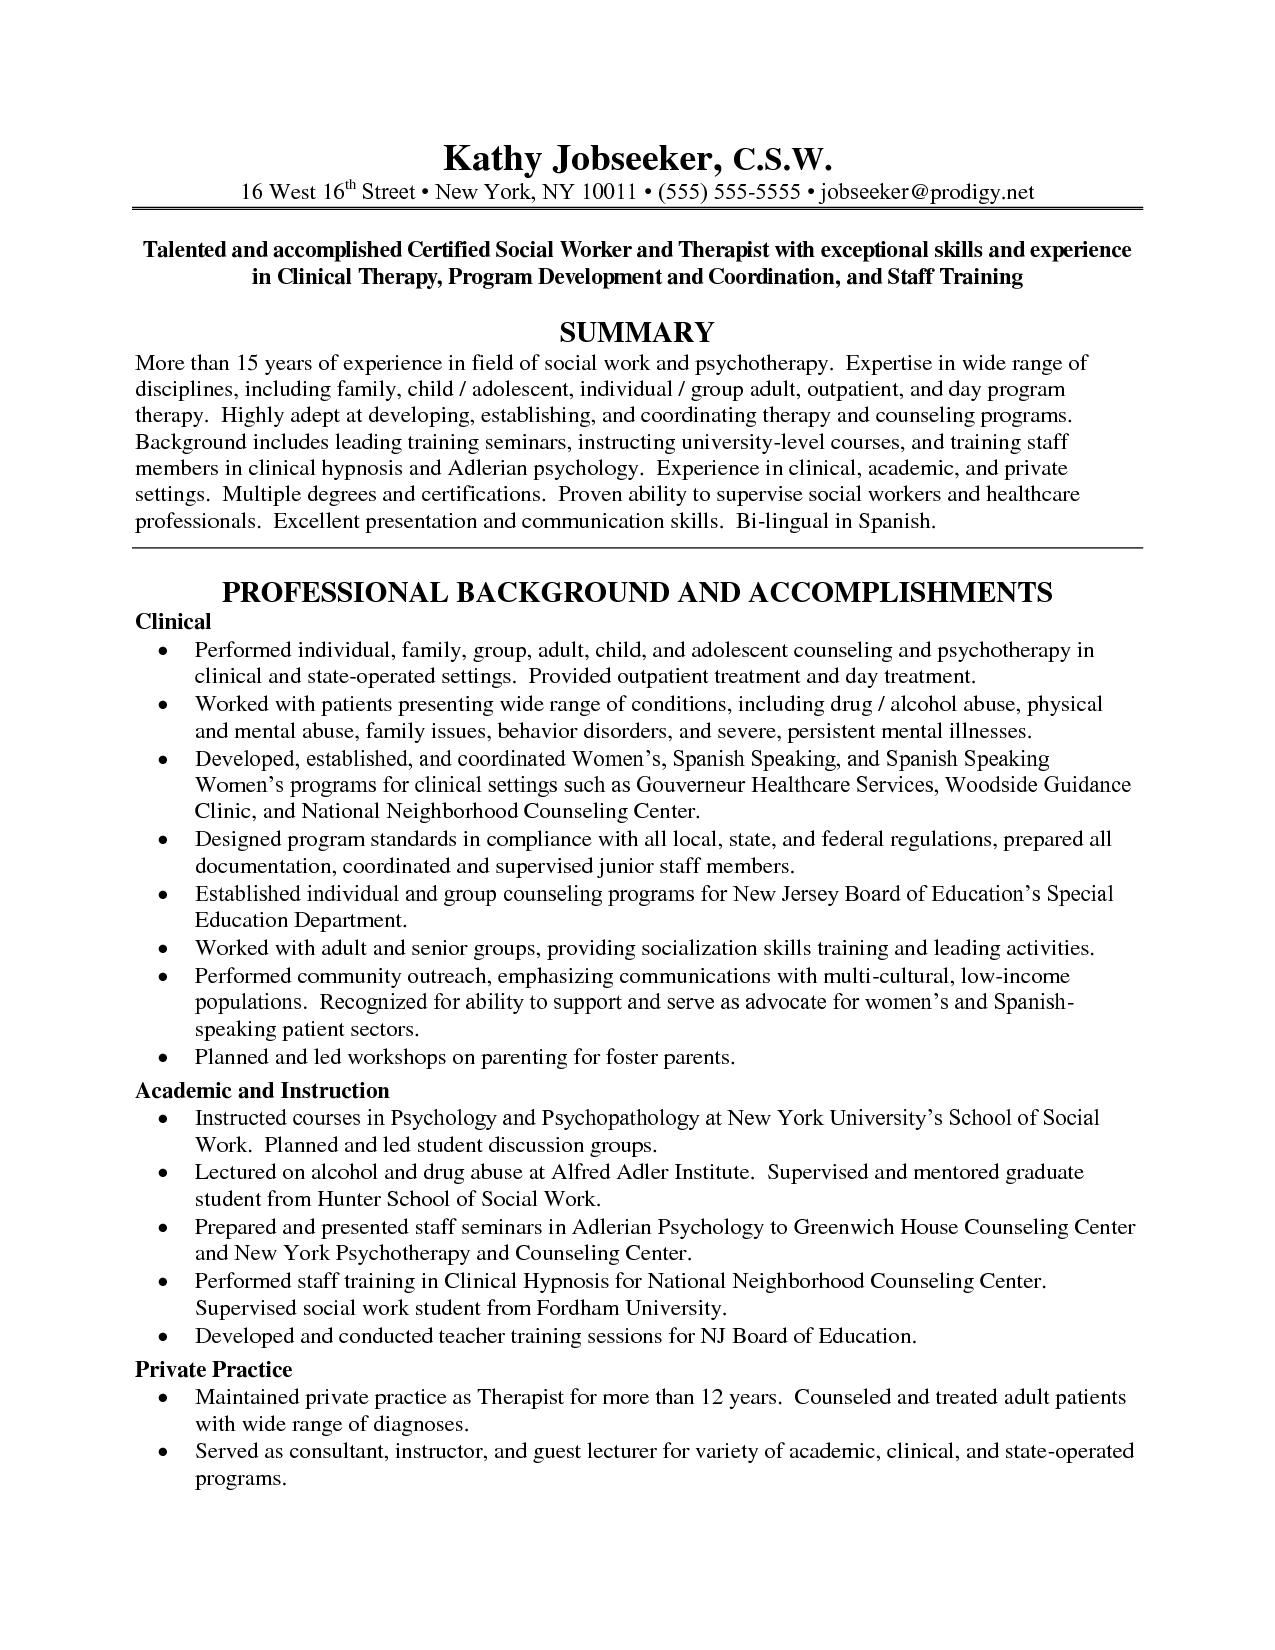 Social Work Resume Examples Social Work Resume With License Social ...